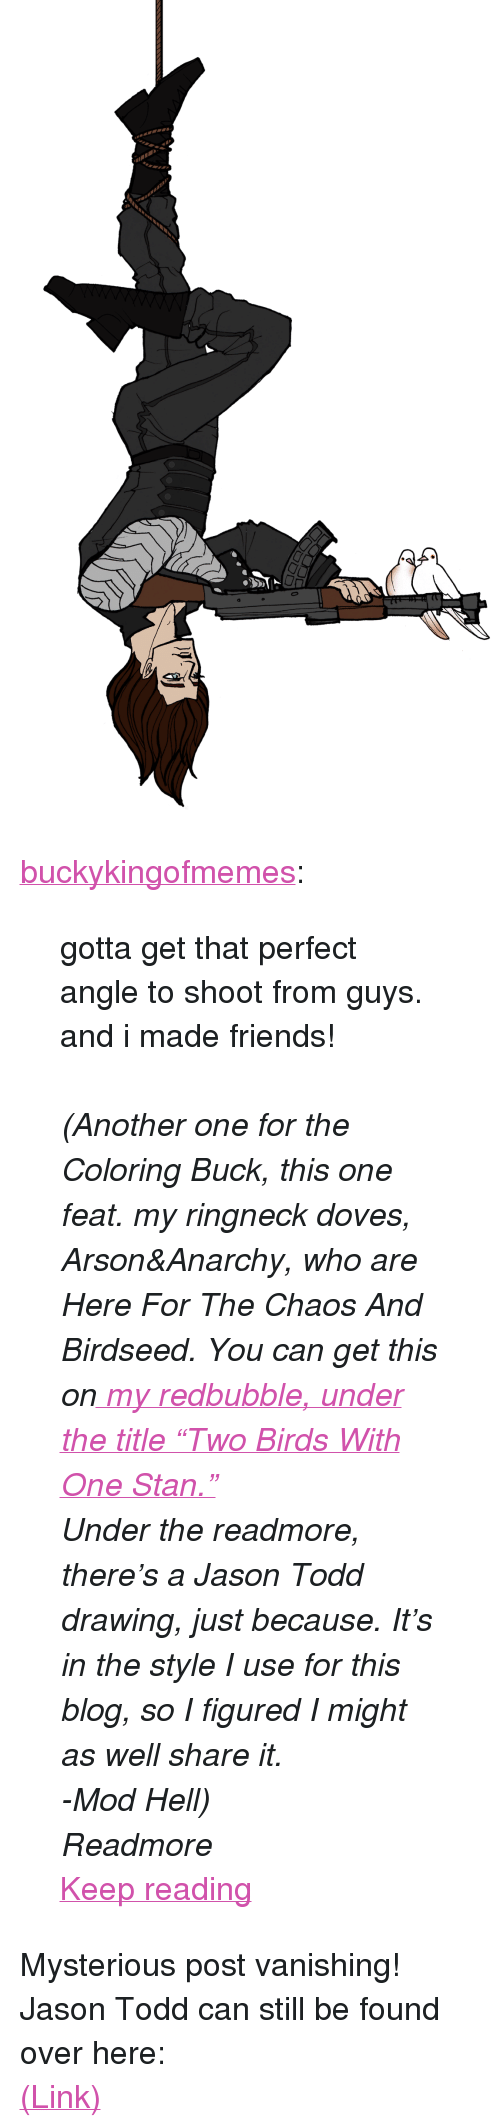 """Vanishing: <p><a href=""""http://buckykingofmemes.tumblr.com/post/164429939636/gotta-get-that-perfect-angle-to-shoot-from-guys"""" class=""""tumblr_blog"""">buckykingofmemes</a>:</p> <blockquote> <p>gotta get that perfect angle to shoot from guys. and i made friends!</p> <p><br/></p> <p><i>(Another one for the Coloring Buck, this one feat. my ringneck doves, Arson&amp;Anarchy, who are Here For The Chaos And Birdseed. You can get this on<a href=""""https://www.redbubble.com/people/buckykingofmeme?asc=u""""> my redbubble, under the title""""Two Birds With One Stan.""""</a></i></p> <p><i>Under the readmore, there's a Jason Todd drawing, just because. It's in the style I use for this blog, so I figured I might as well share it.</i></p> <p><i>-Mod Hell)</i></p> <p><i>Readmore</i></p> <p><a href=""""http://buckykingofmemes.tumblr.com/post/164429939636/gotta-get-that-perfect-angle-to-shoot-from-guys"""" class=""""tmblr-truncated-link read_more"""">Keep reading</a></p> </blockquote> <p>Mysterious post vanishing! Jason Todd can still be found over here:</p><p><a href=""""http://hellenhighwater.tumblr.com/post/164429454415/jason-todd-i-recently-ish-followed"""">(Link)</a></p>"""